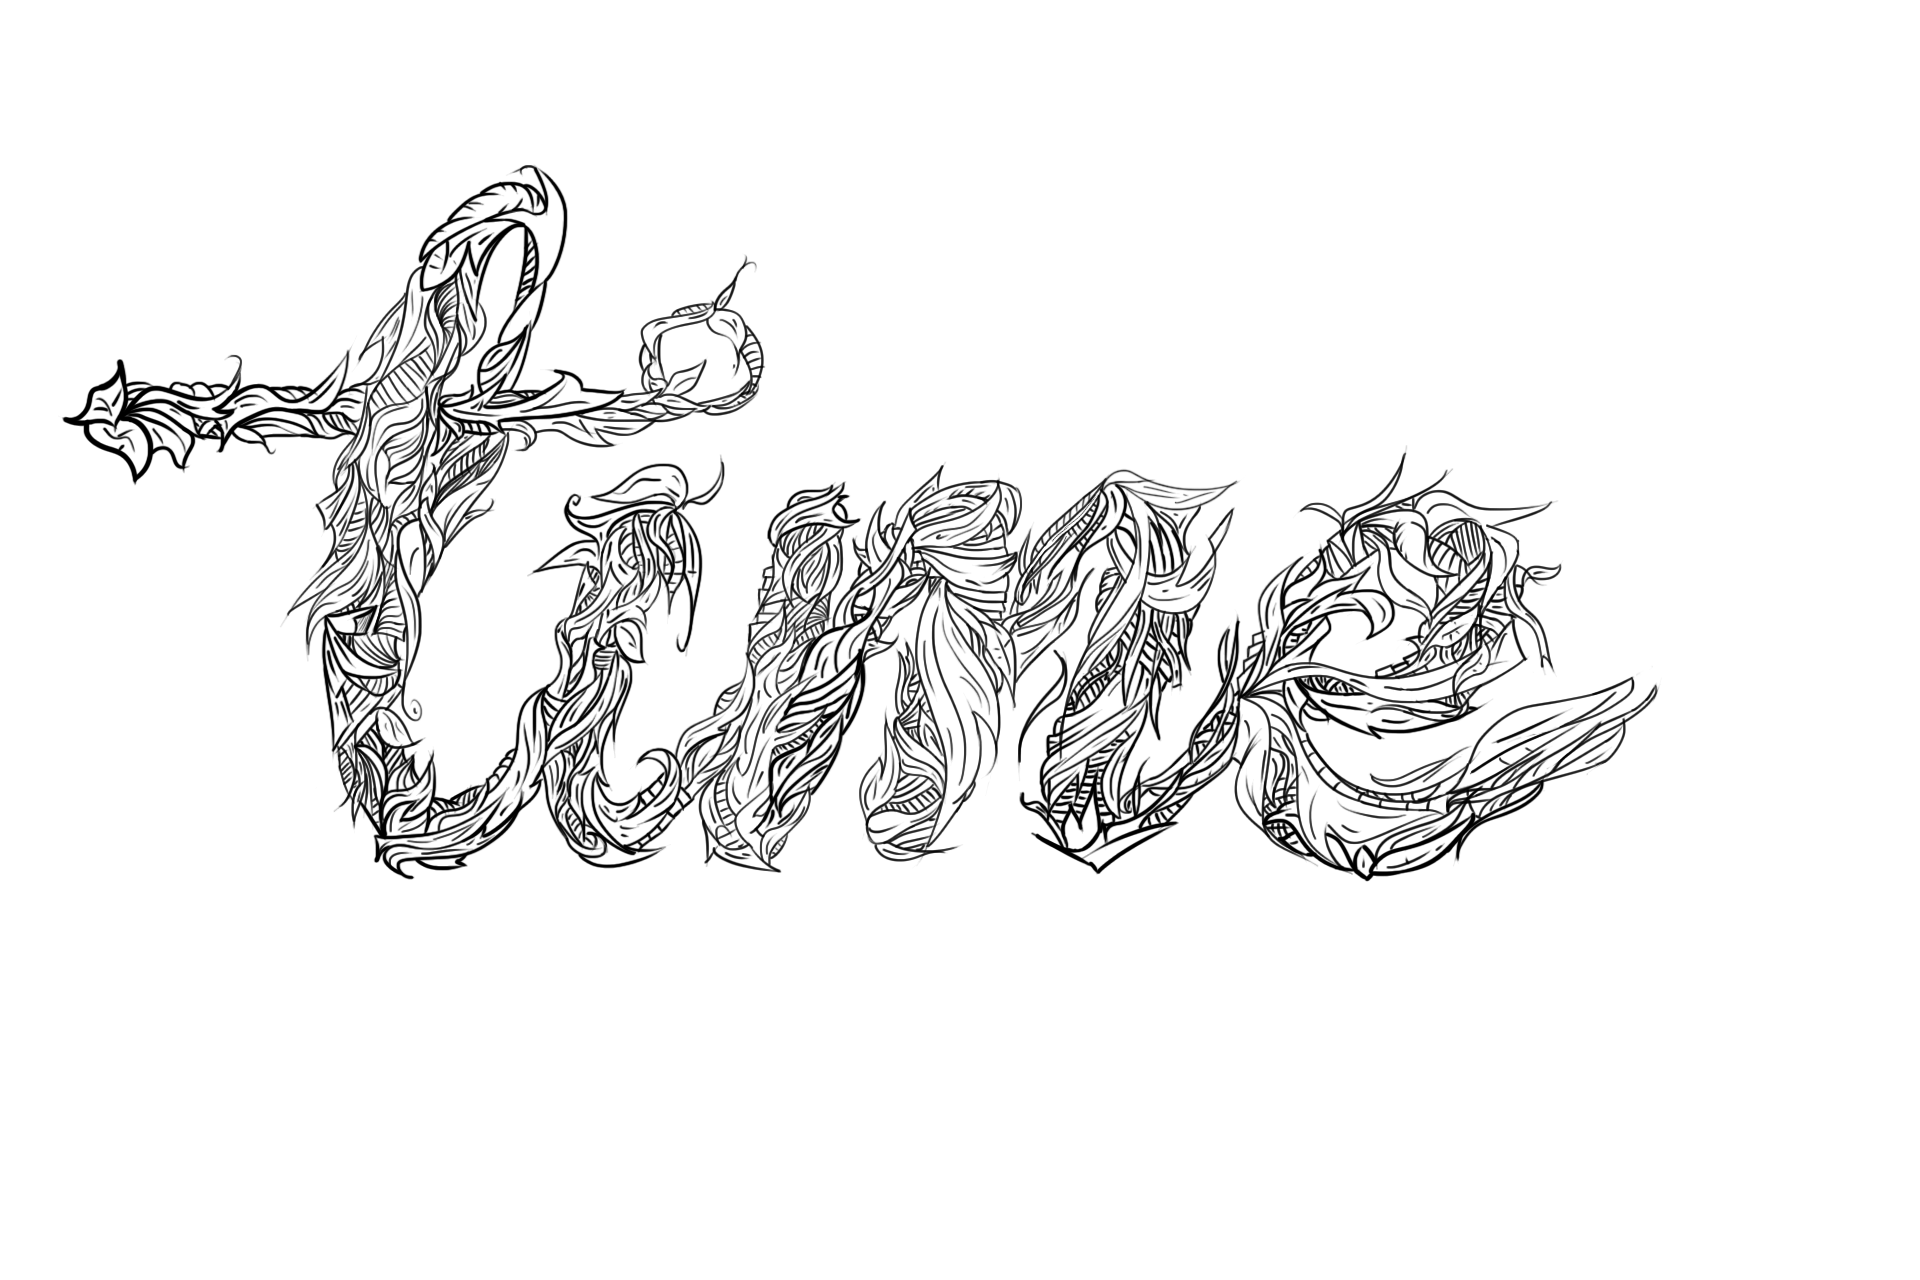 Line Art Typography : Time typography black and white line art by trbowl on